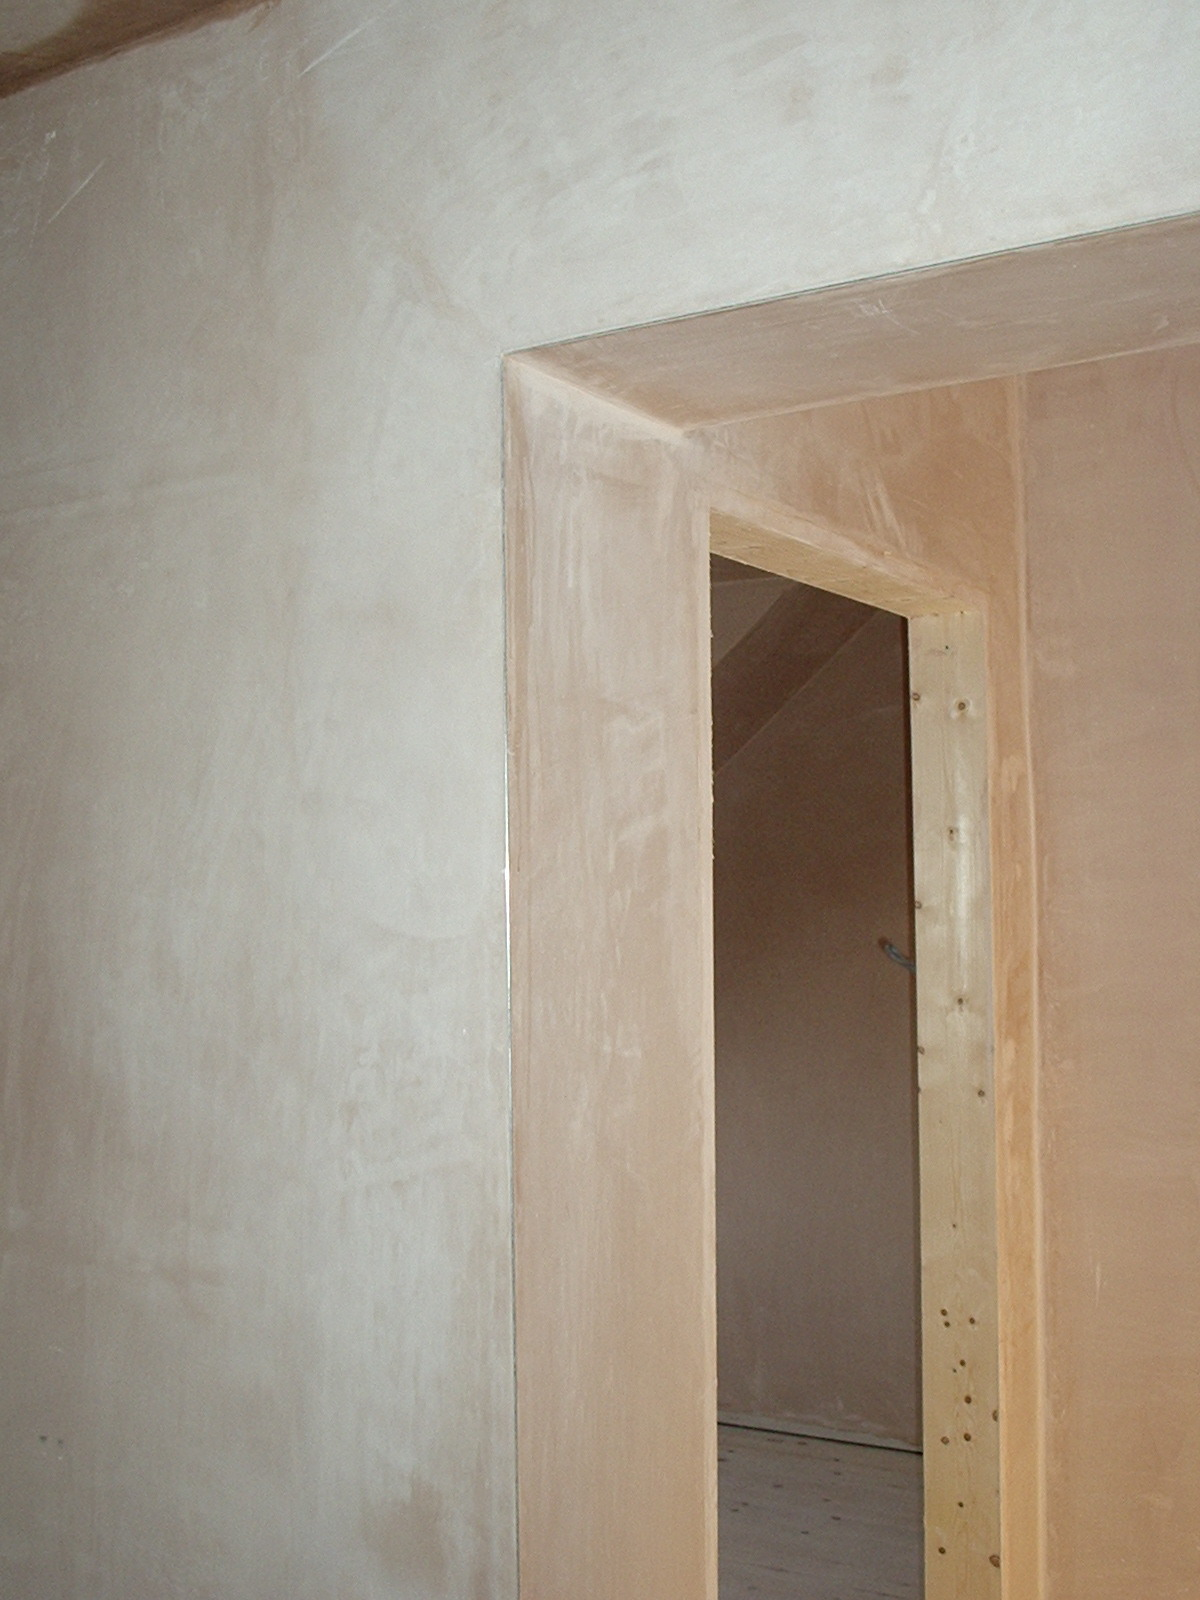 Nottingham Plasterer Doorway 2